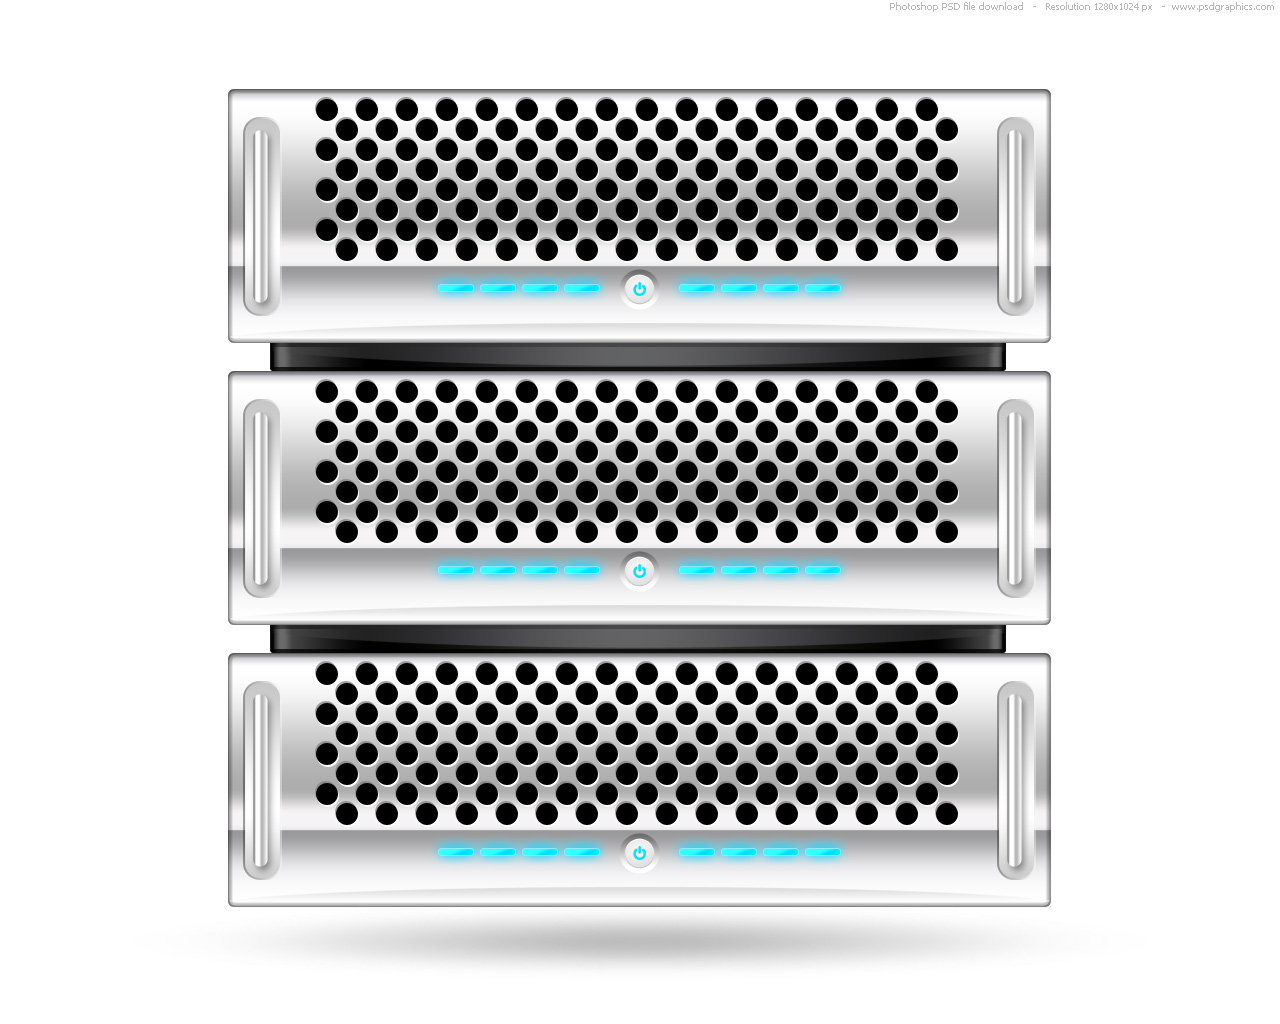 Silver rack server, PSD web icon | PSDGraphics